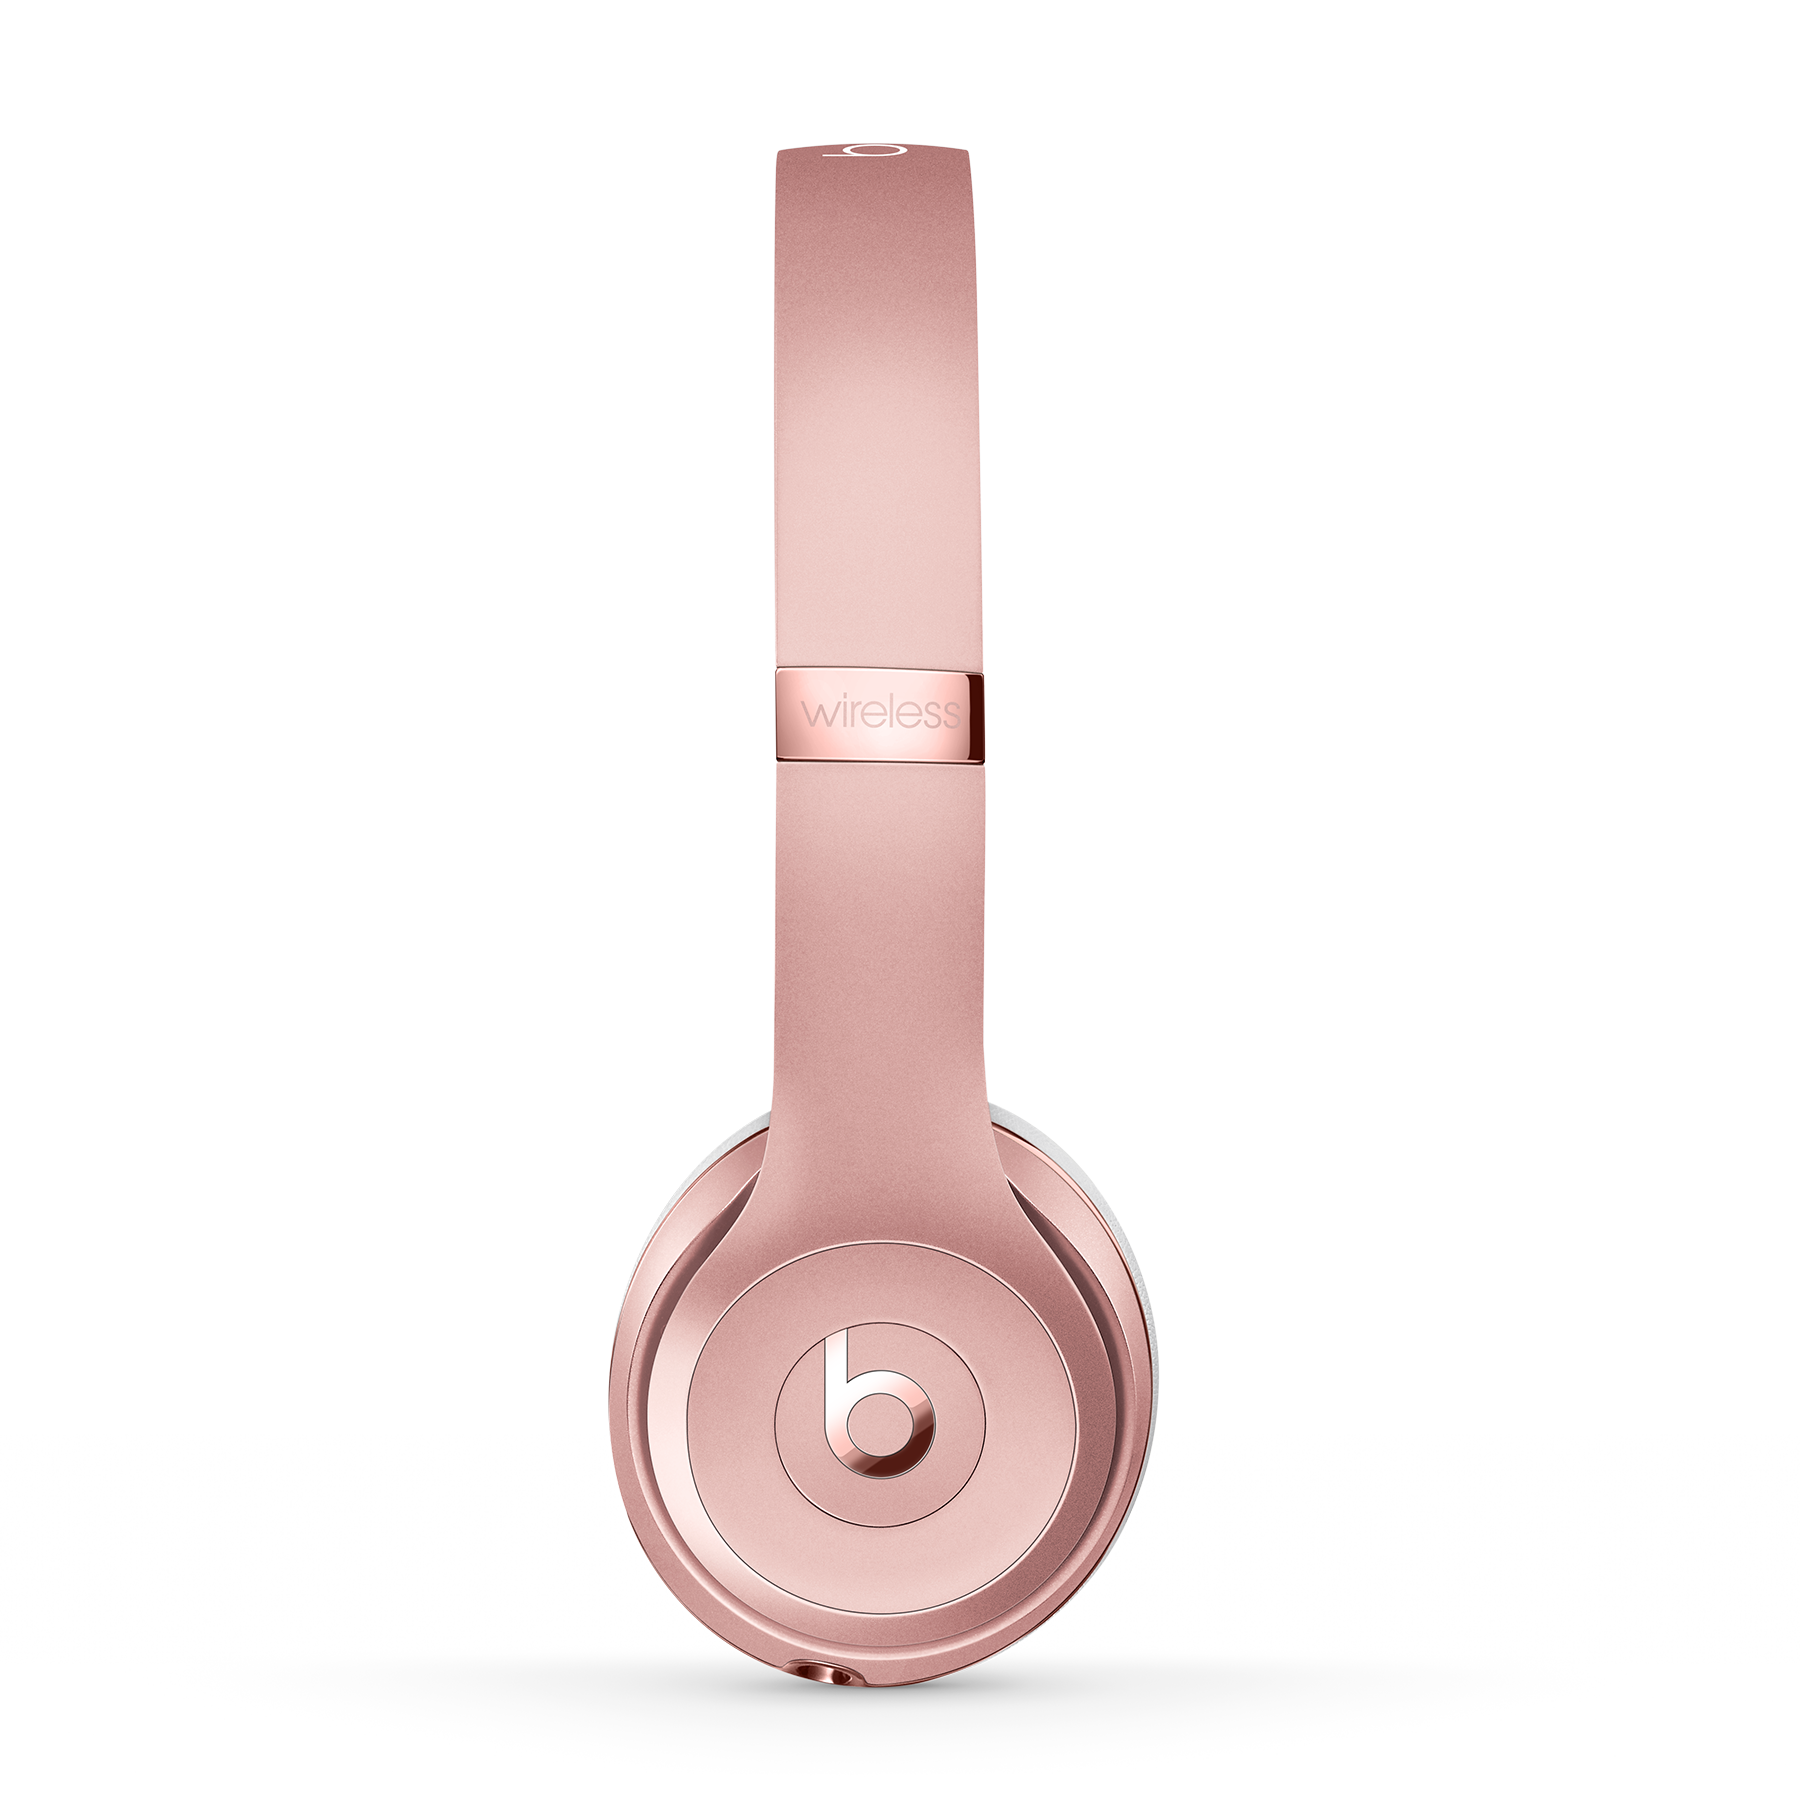 beats solo3 wireless beats by dre uk rh beatsbydre com beats solo wireless user guide beats wireless headphones user guide